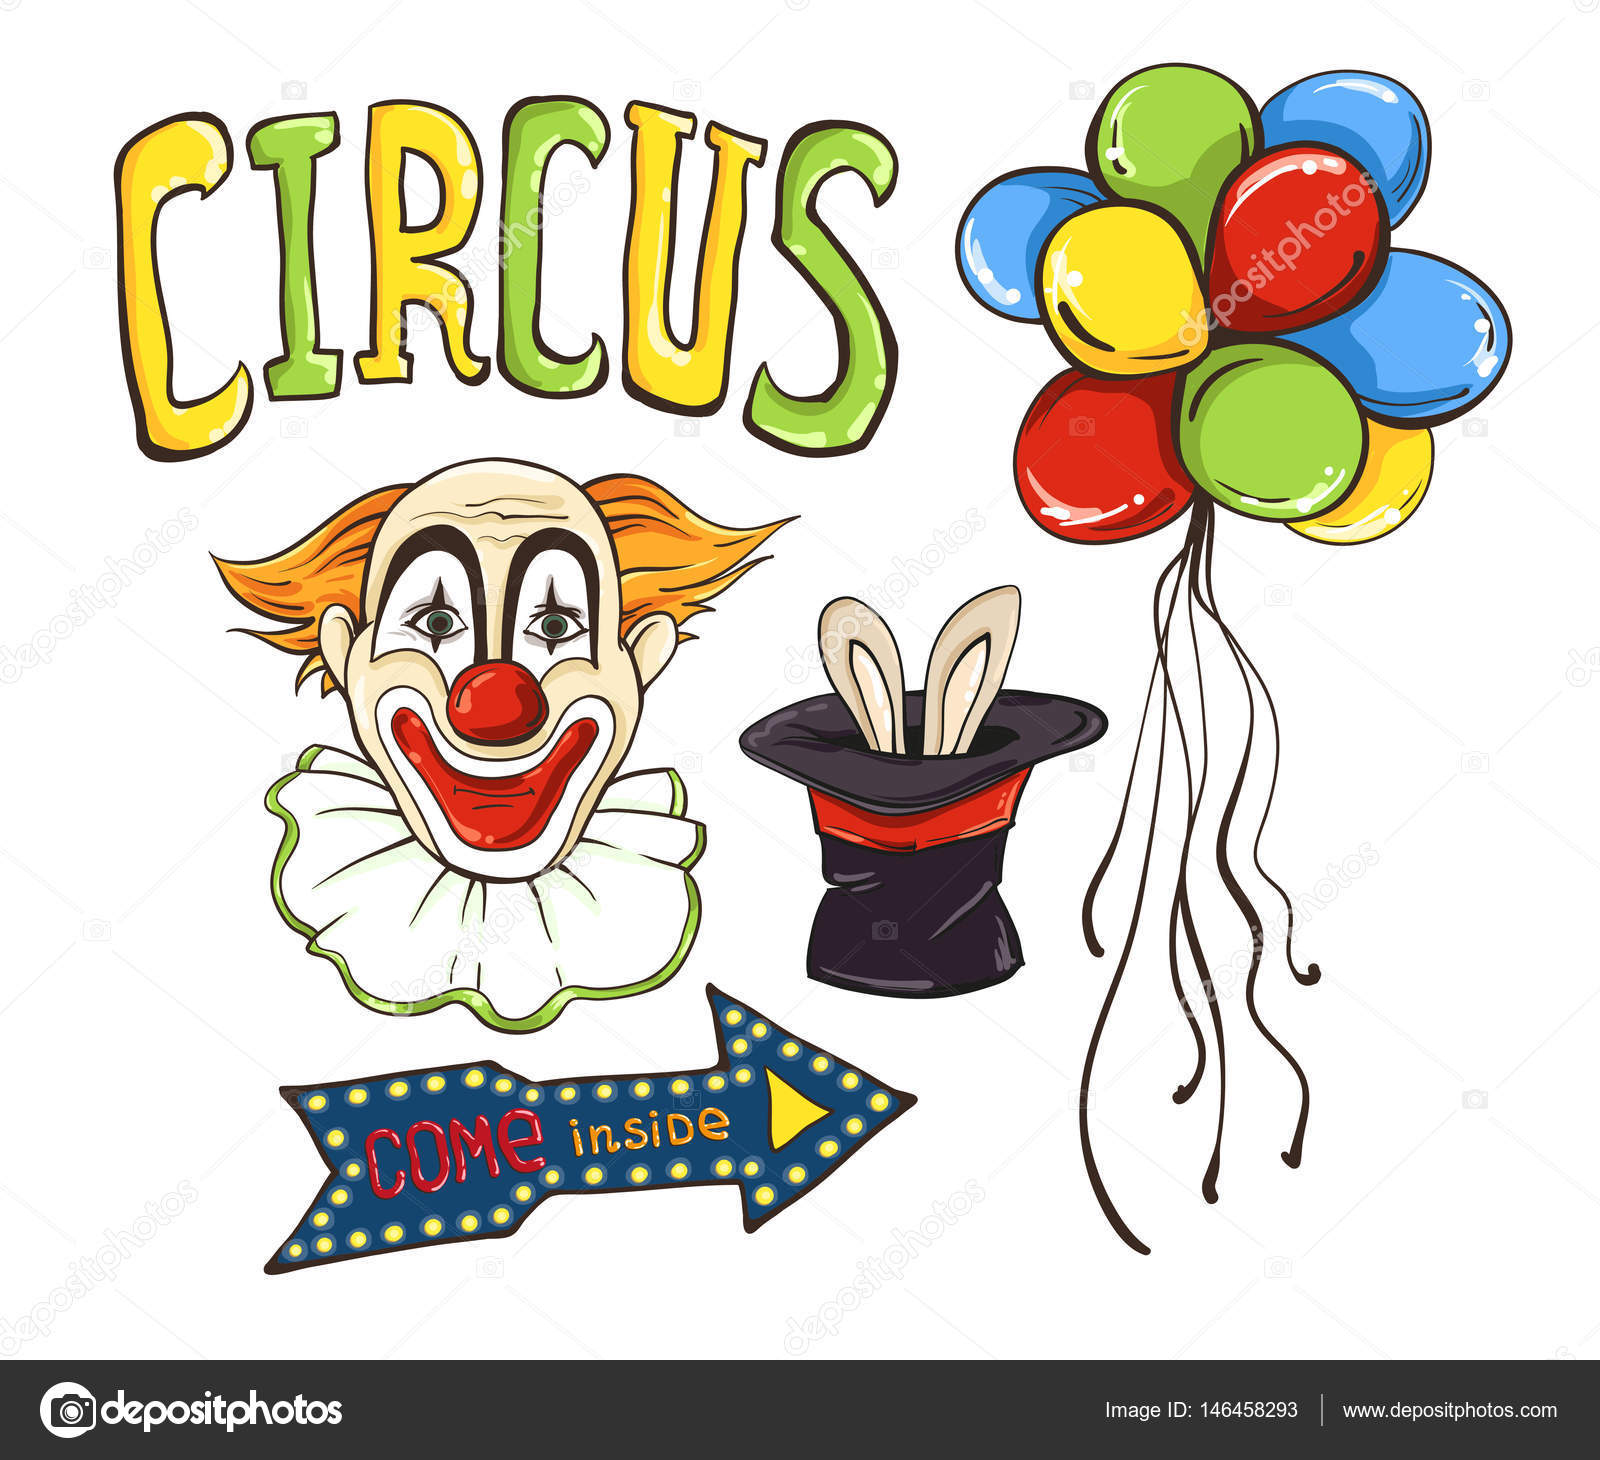 circus set with clown face balloons hat and rabbit ears on it